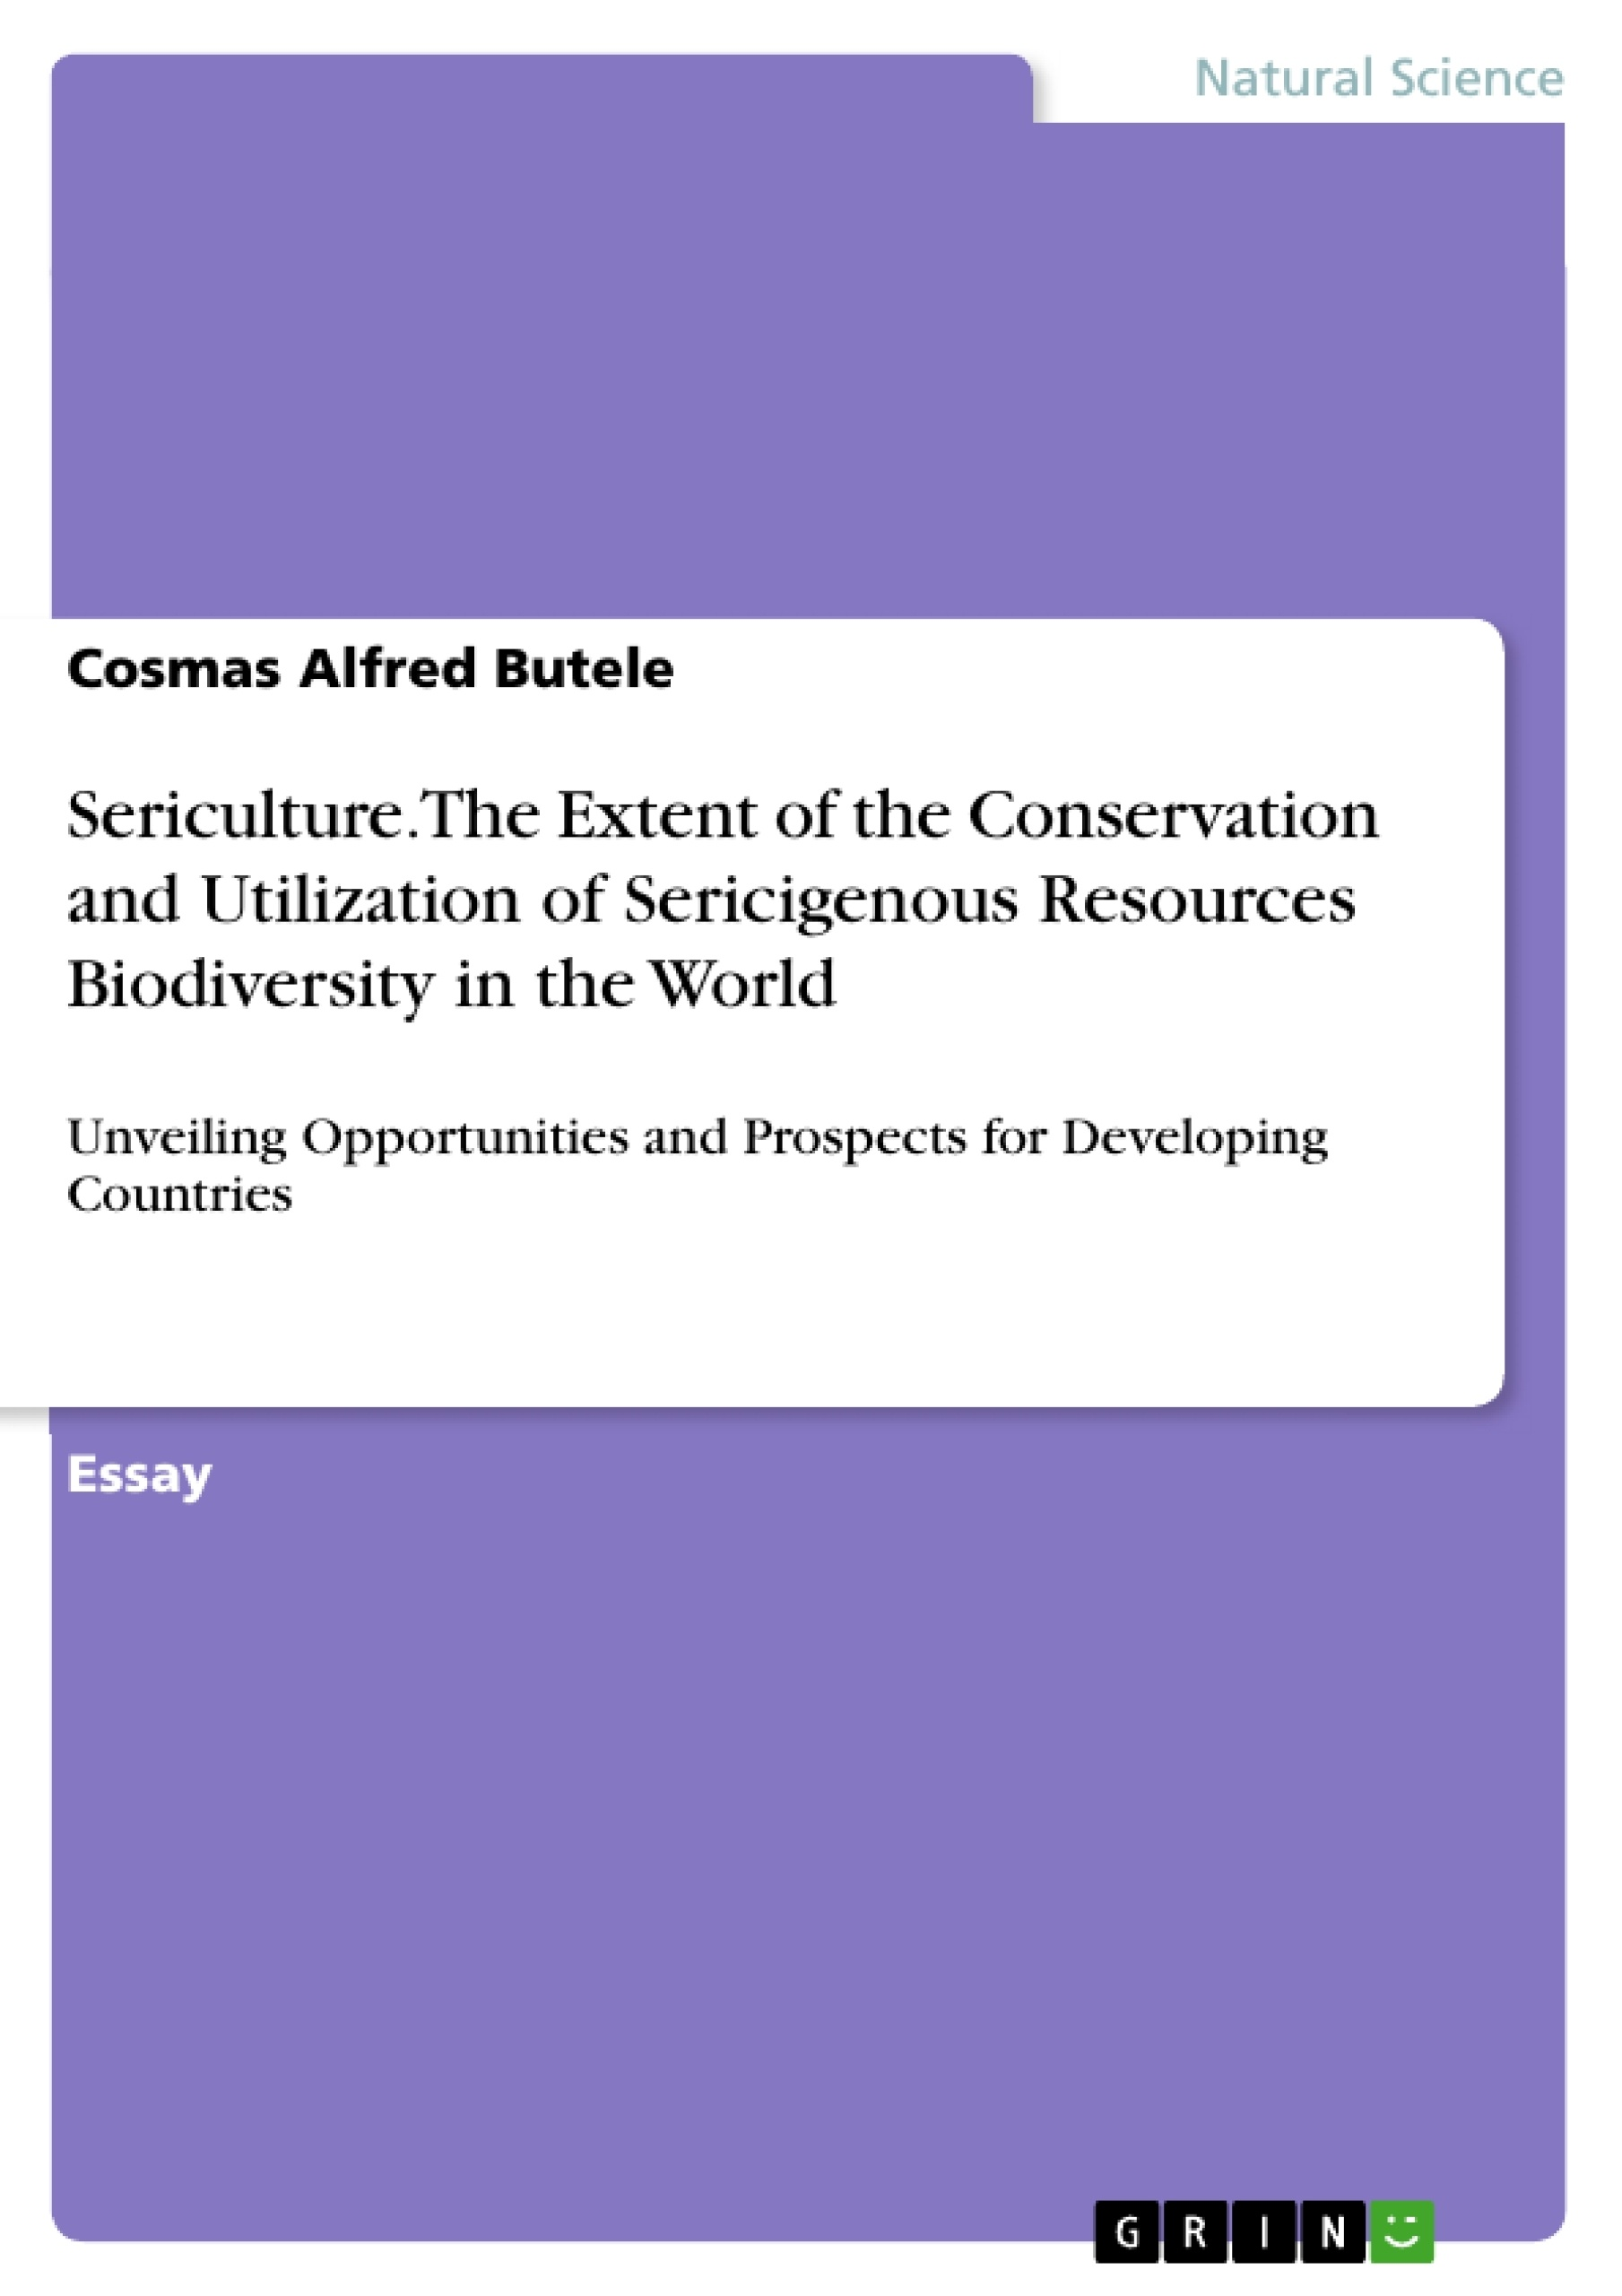 conservation of resources essay essay on energy conservation words heinrich b ll stiftung role of individual in conservation natural resources